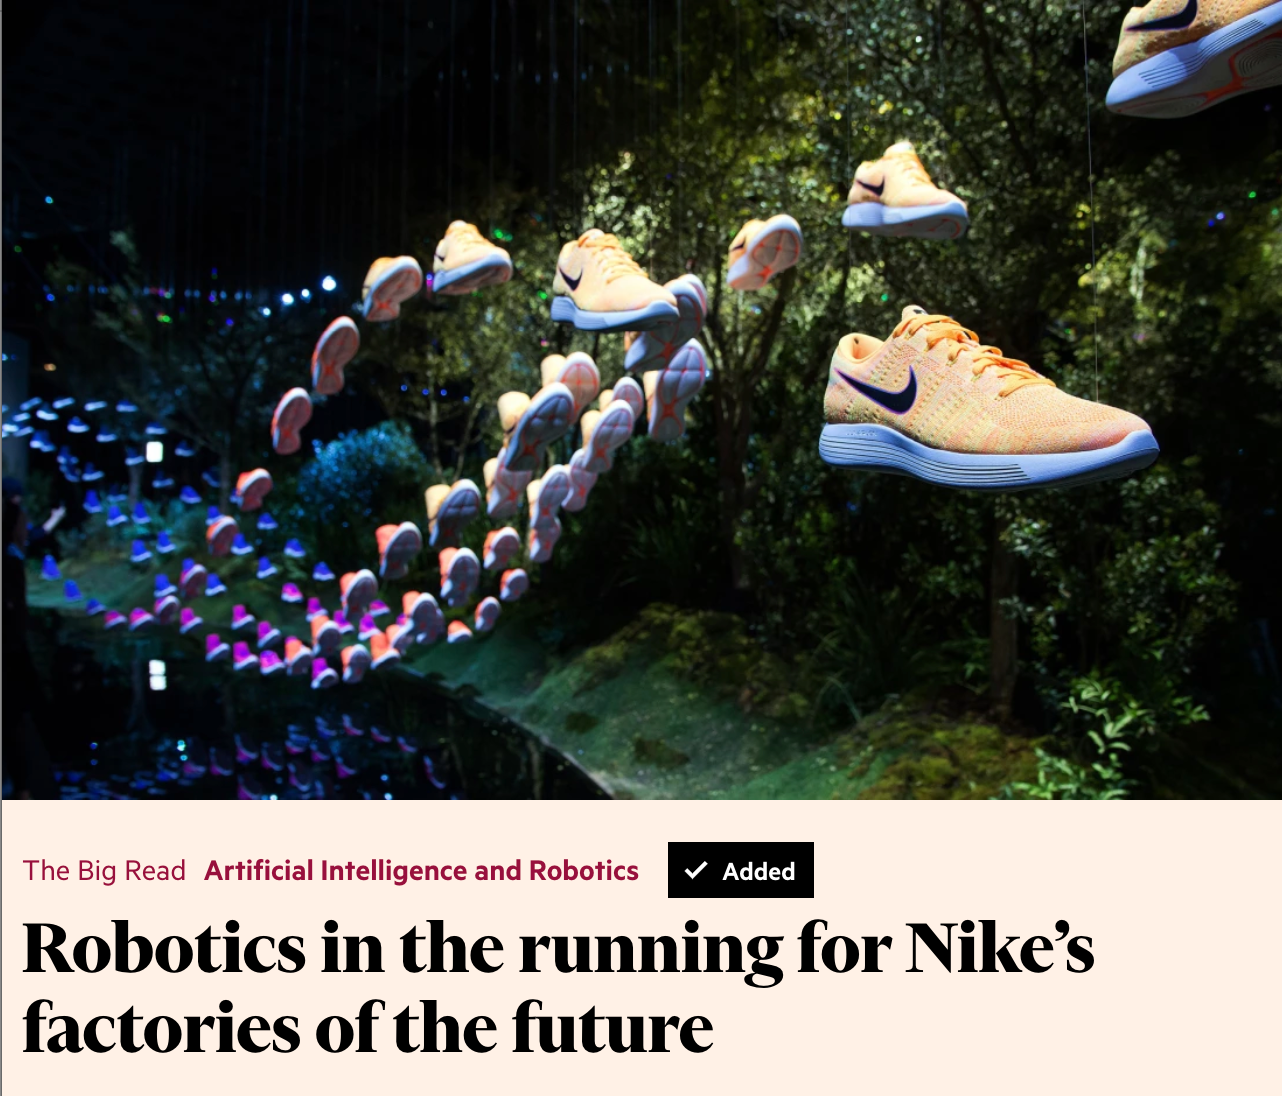 Nike looks towards Robots to reduce costs